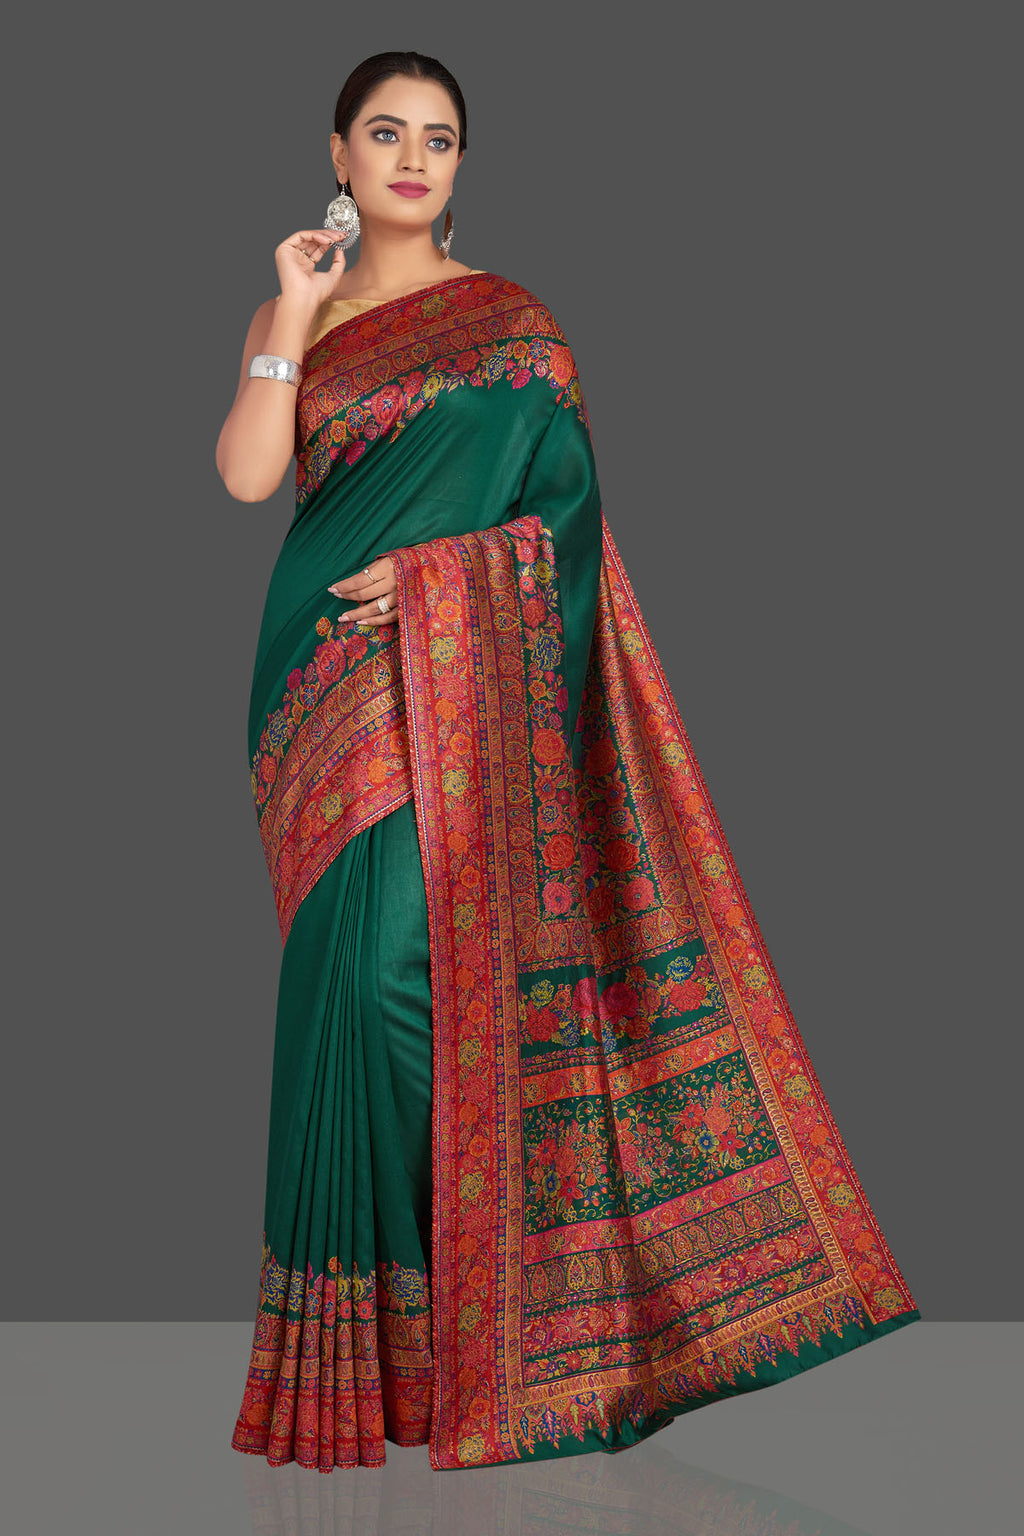 Shop stunning dark green Kani weave tussar muga sari online in USA. Shop designer sarees, printed sarees, embroidered sarees, crepe sarees in USA from Pure Elegance Indian fashion store in USA.-full view